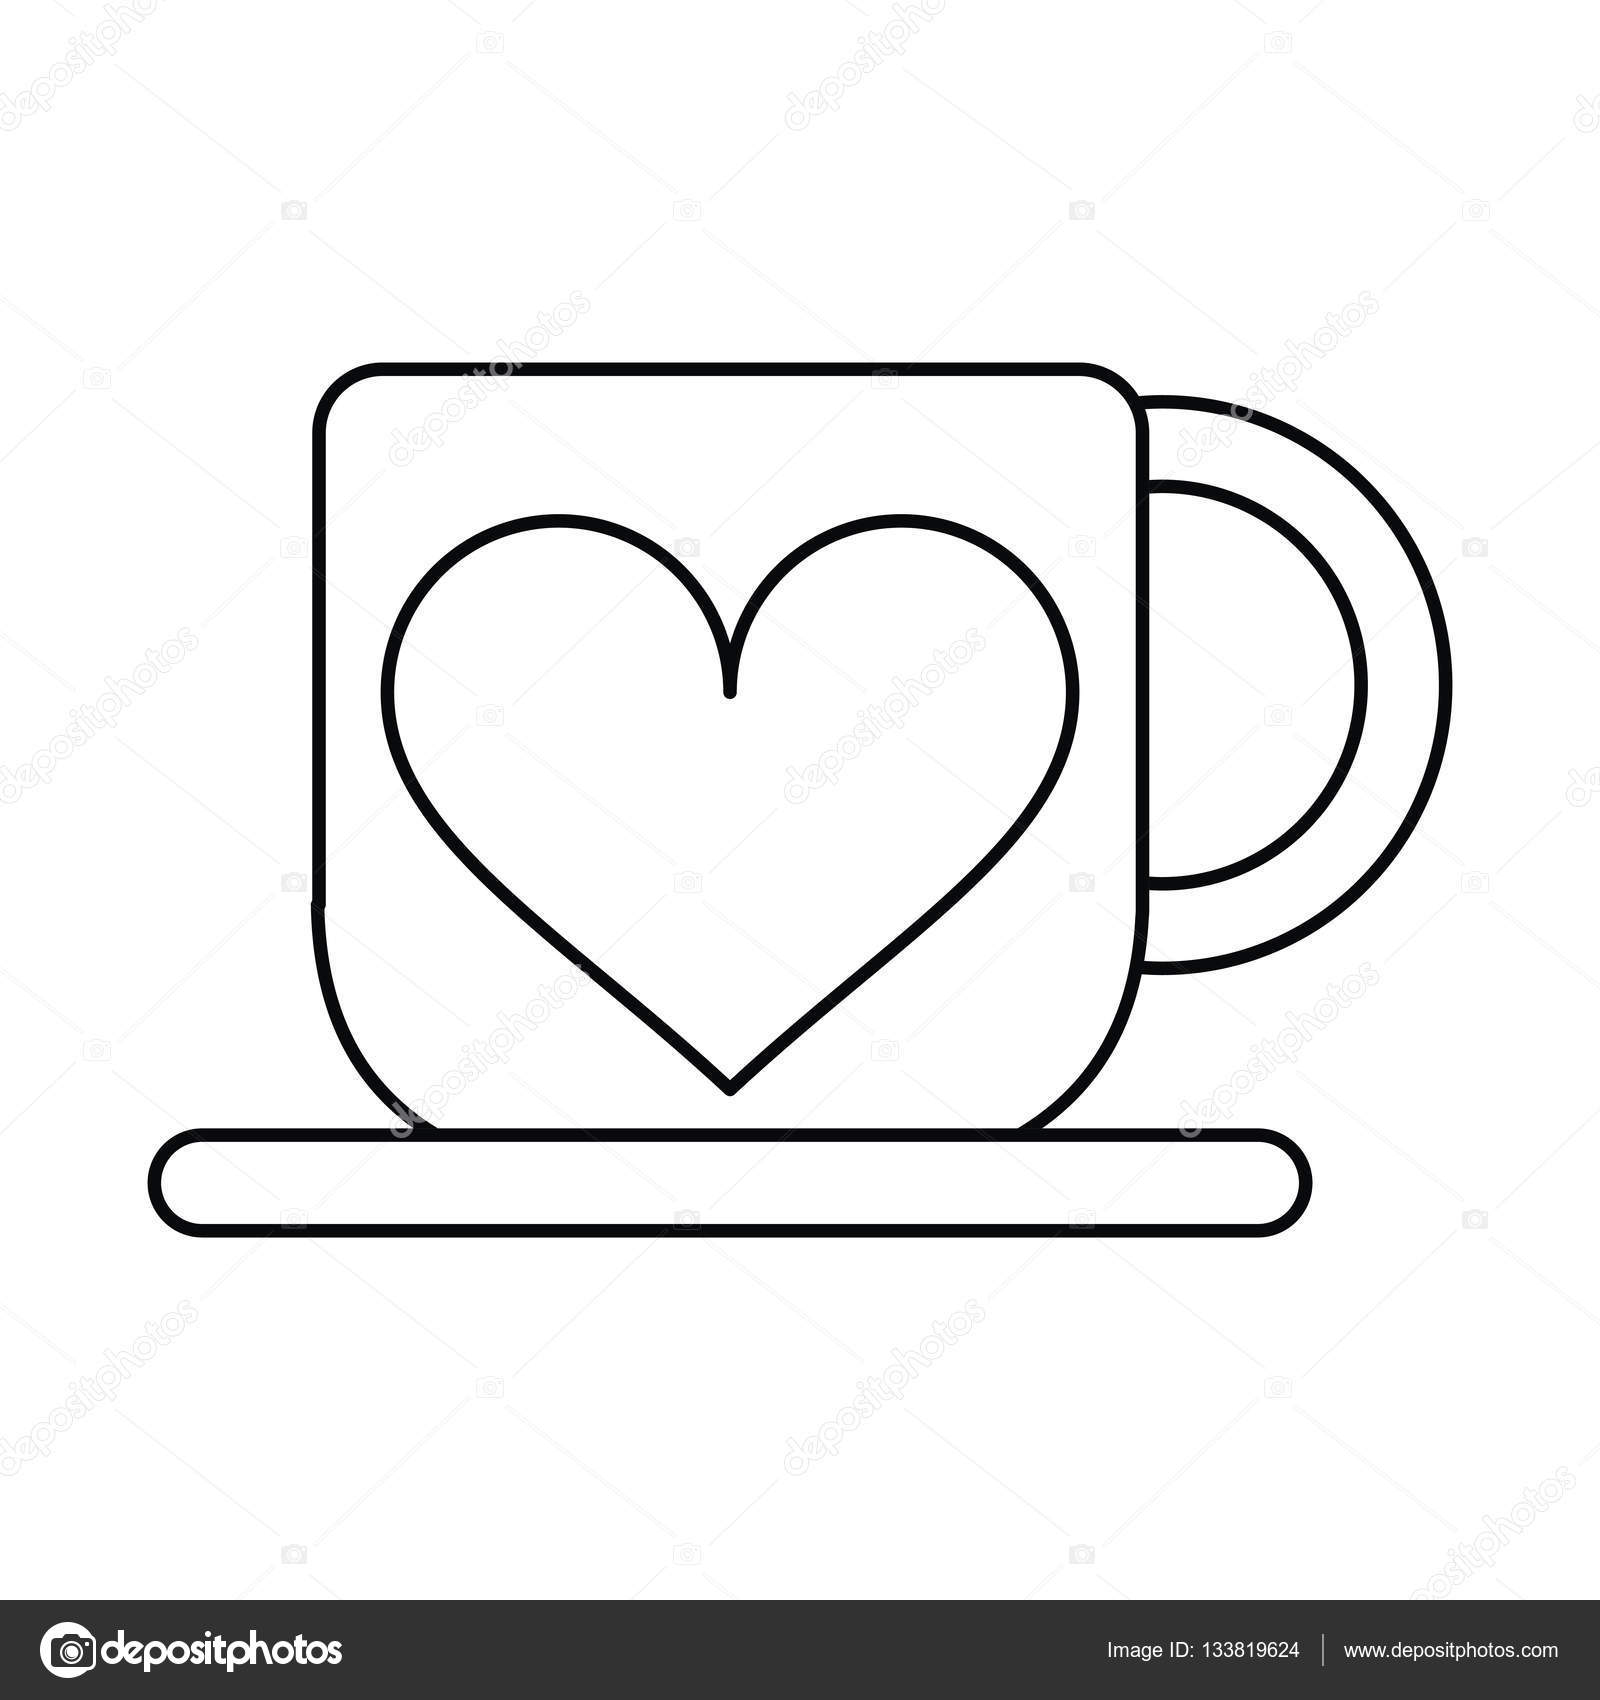 Cup Coffee Love Heart Hot Outline Vector Illustration Eps 10 By Jemastock